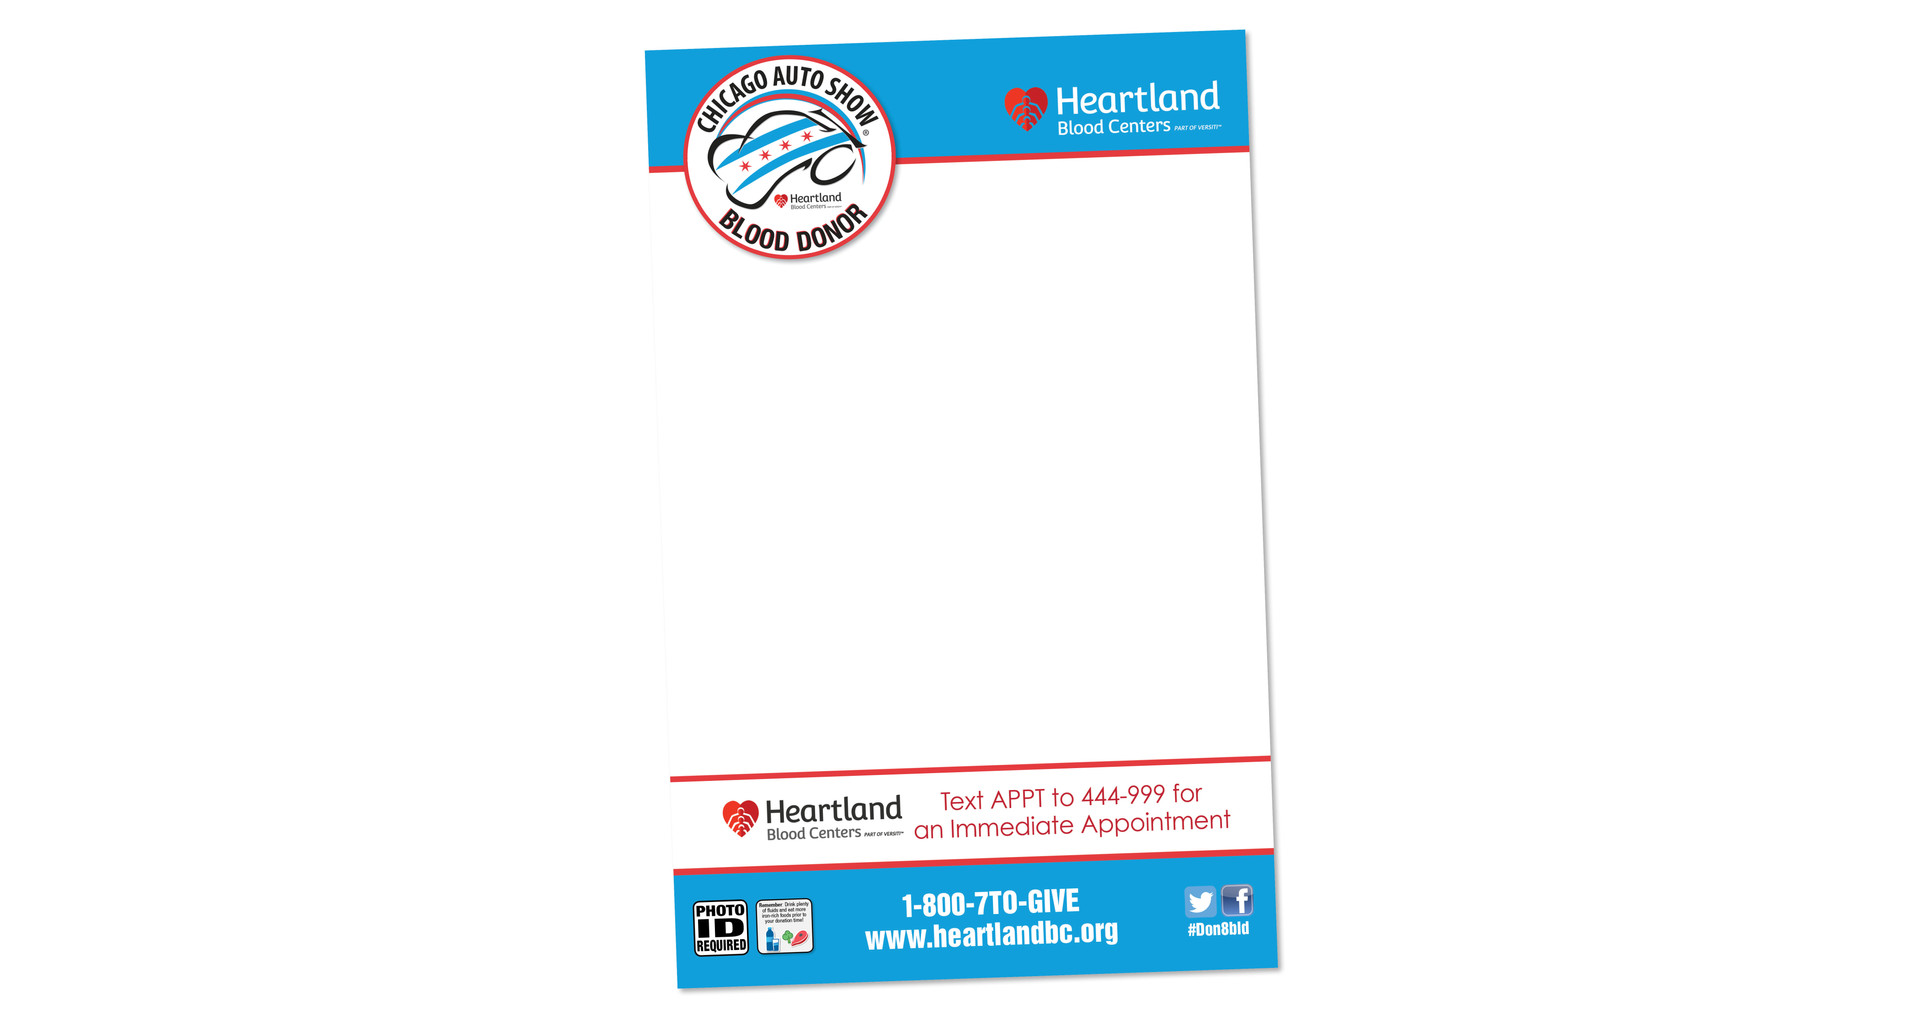 Heartland Blood Centers Email Template